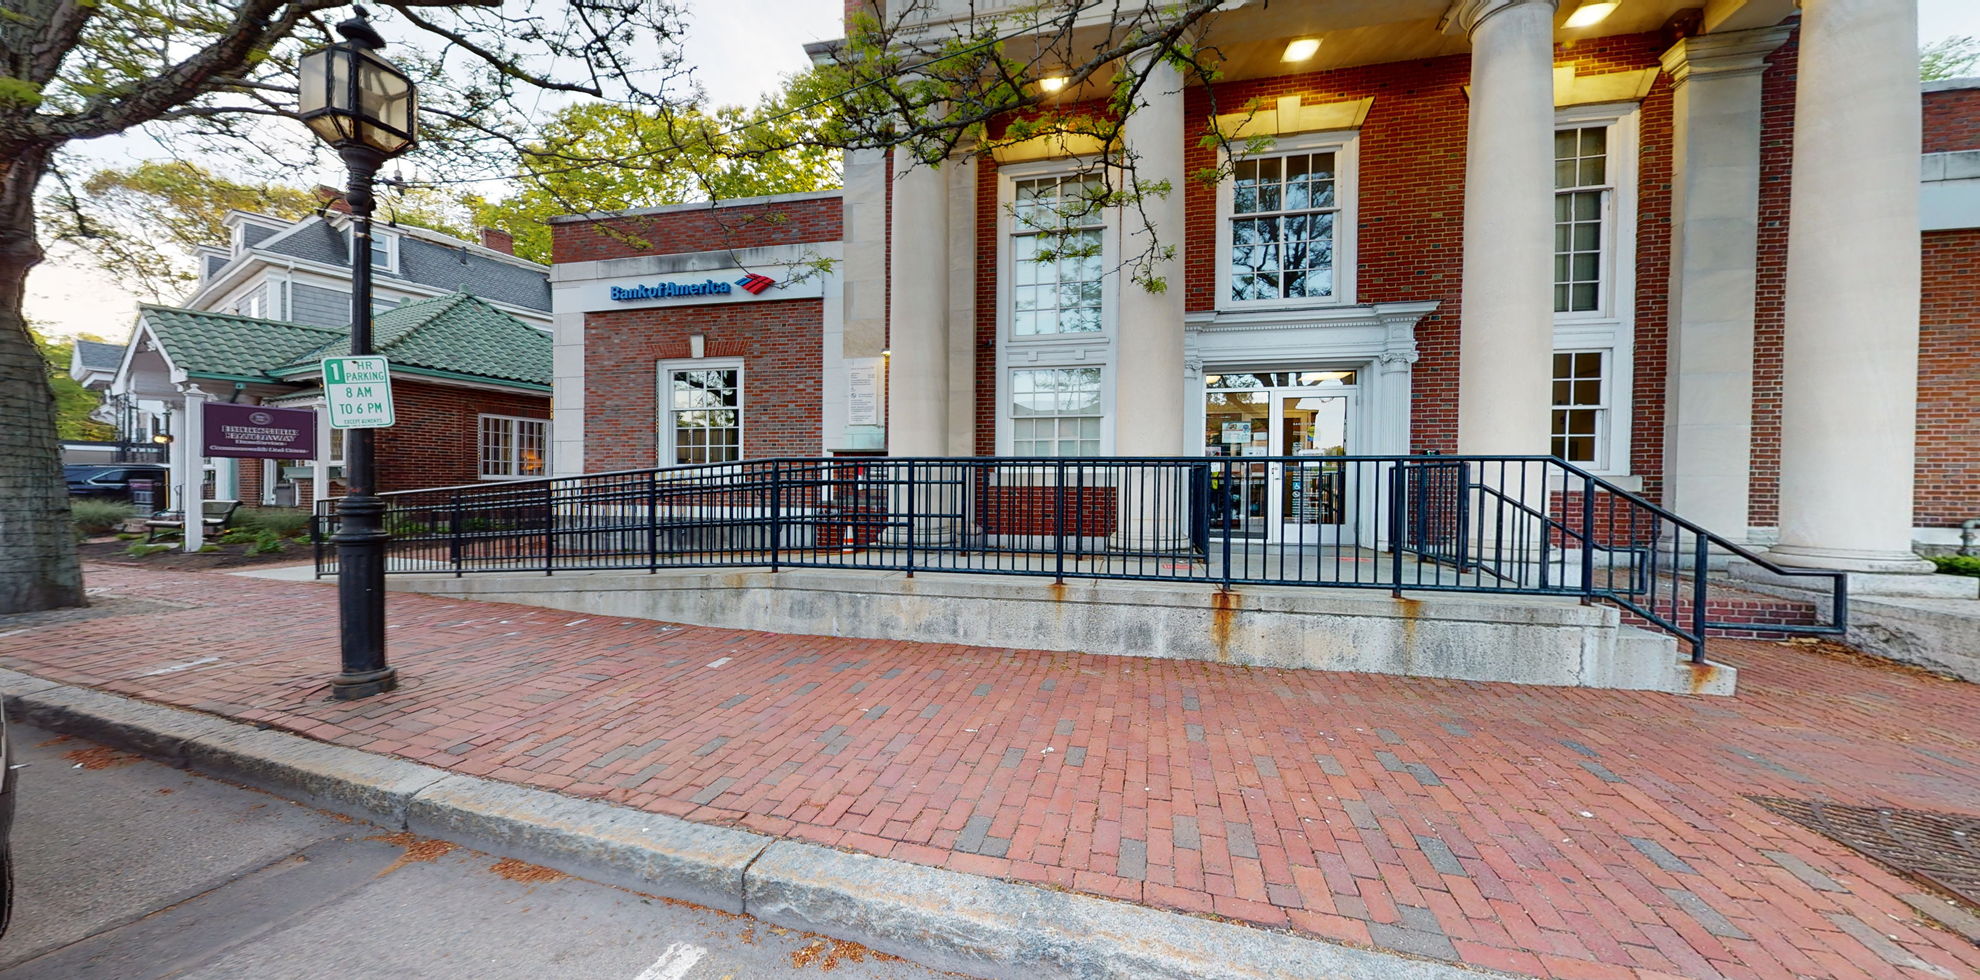 Bank of America financial center with walk-up ATM | 35 Church St, Winchester, MA 01890